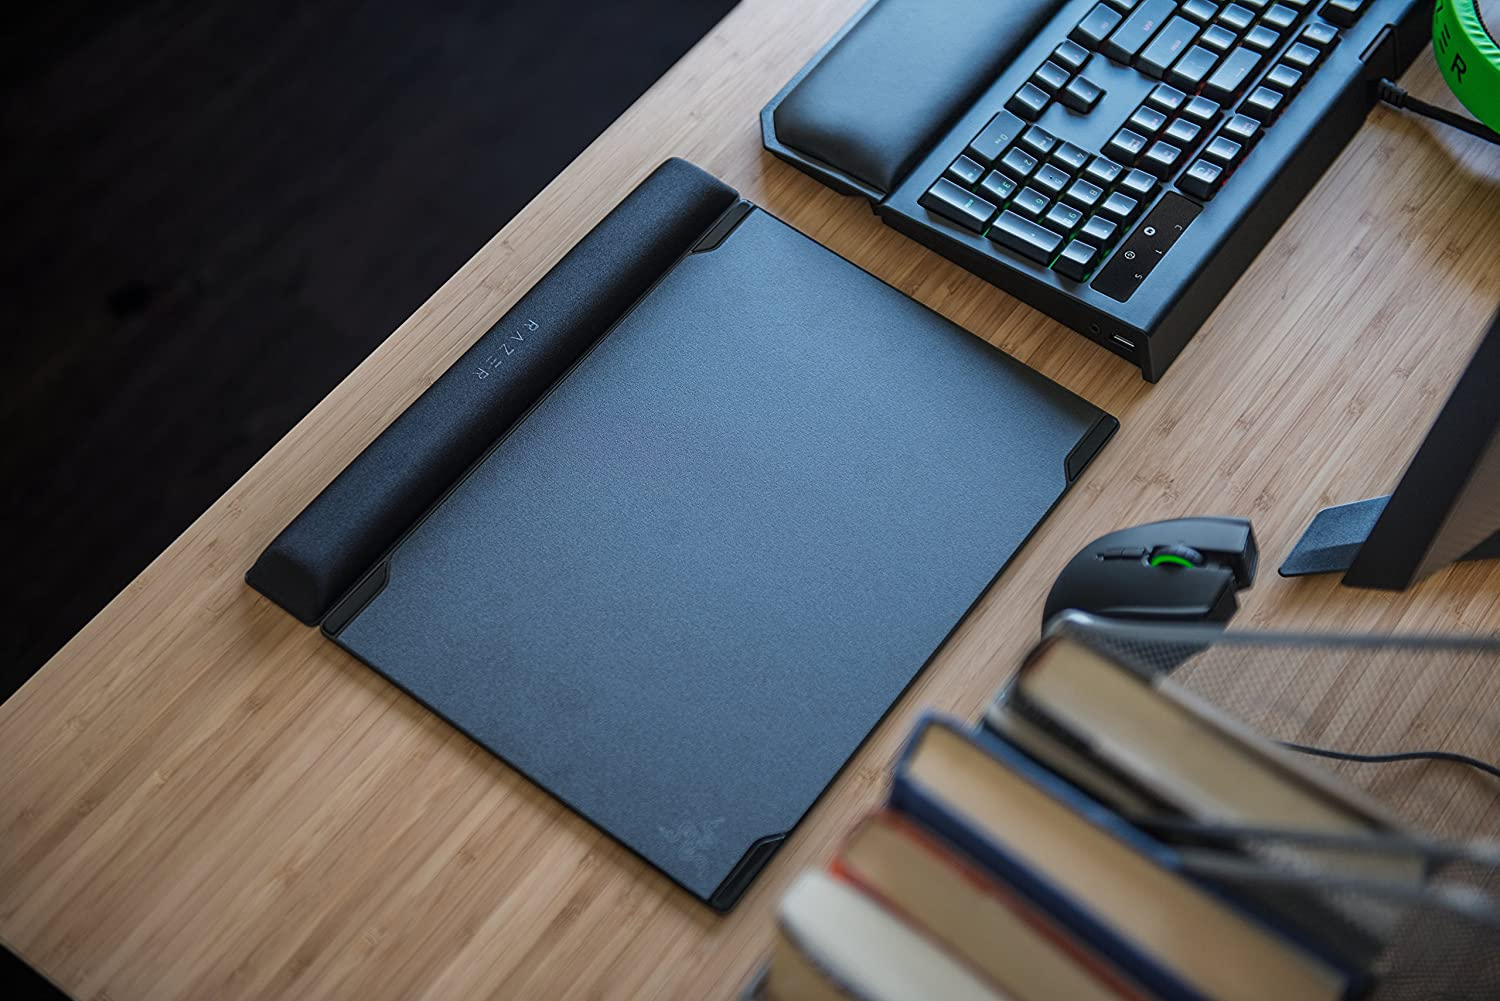 Hard and Cloth Gaming Mouse Pad Improved Memory Foam Wrist Rest Optimized Form Factor Razer Vespula V2: Dual-Sided Surface